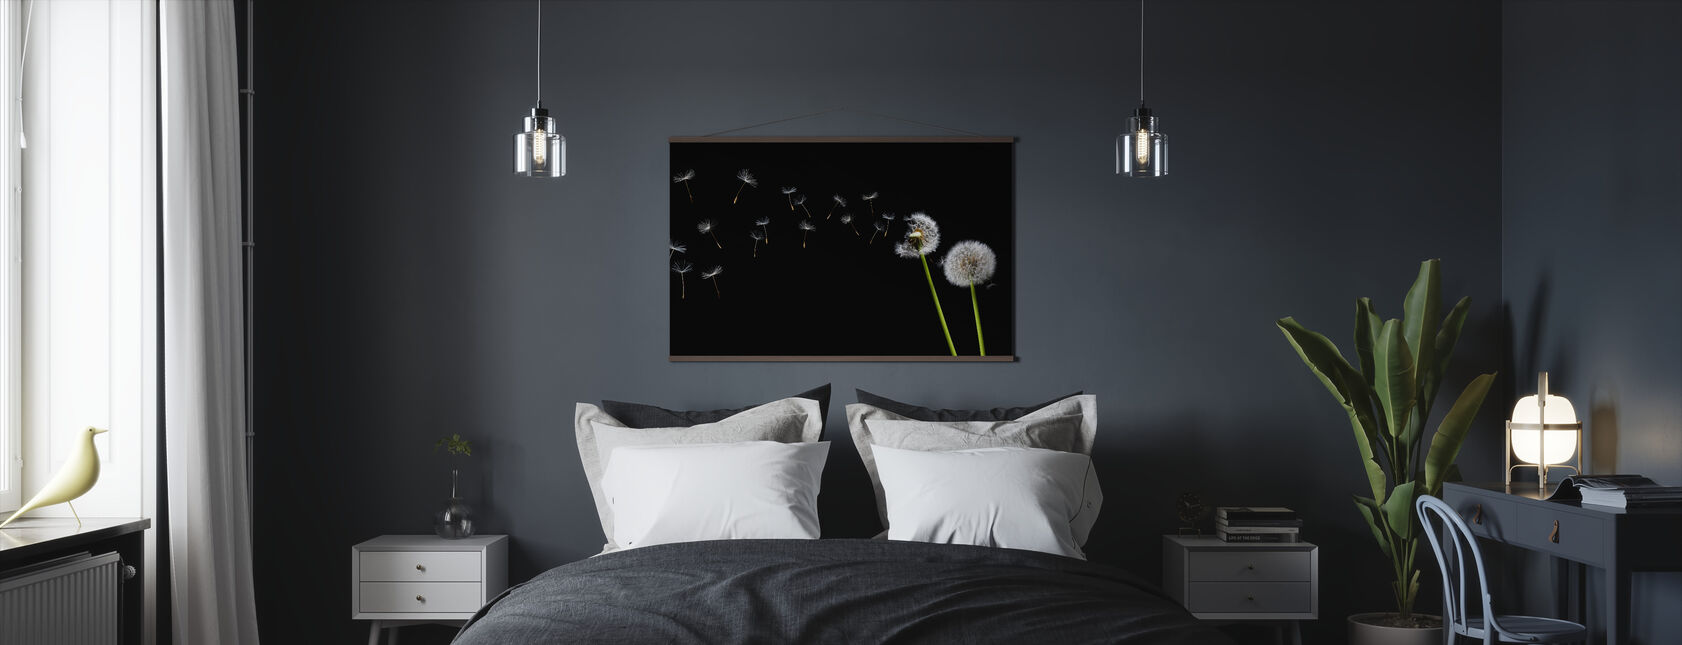 Dandelion Seeds in the Wind - Poster - Bedroom